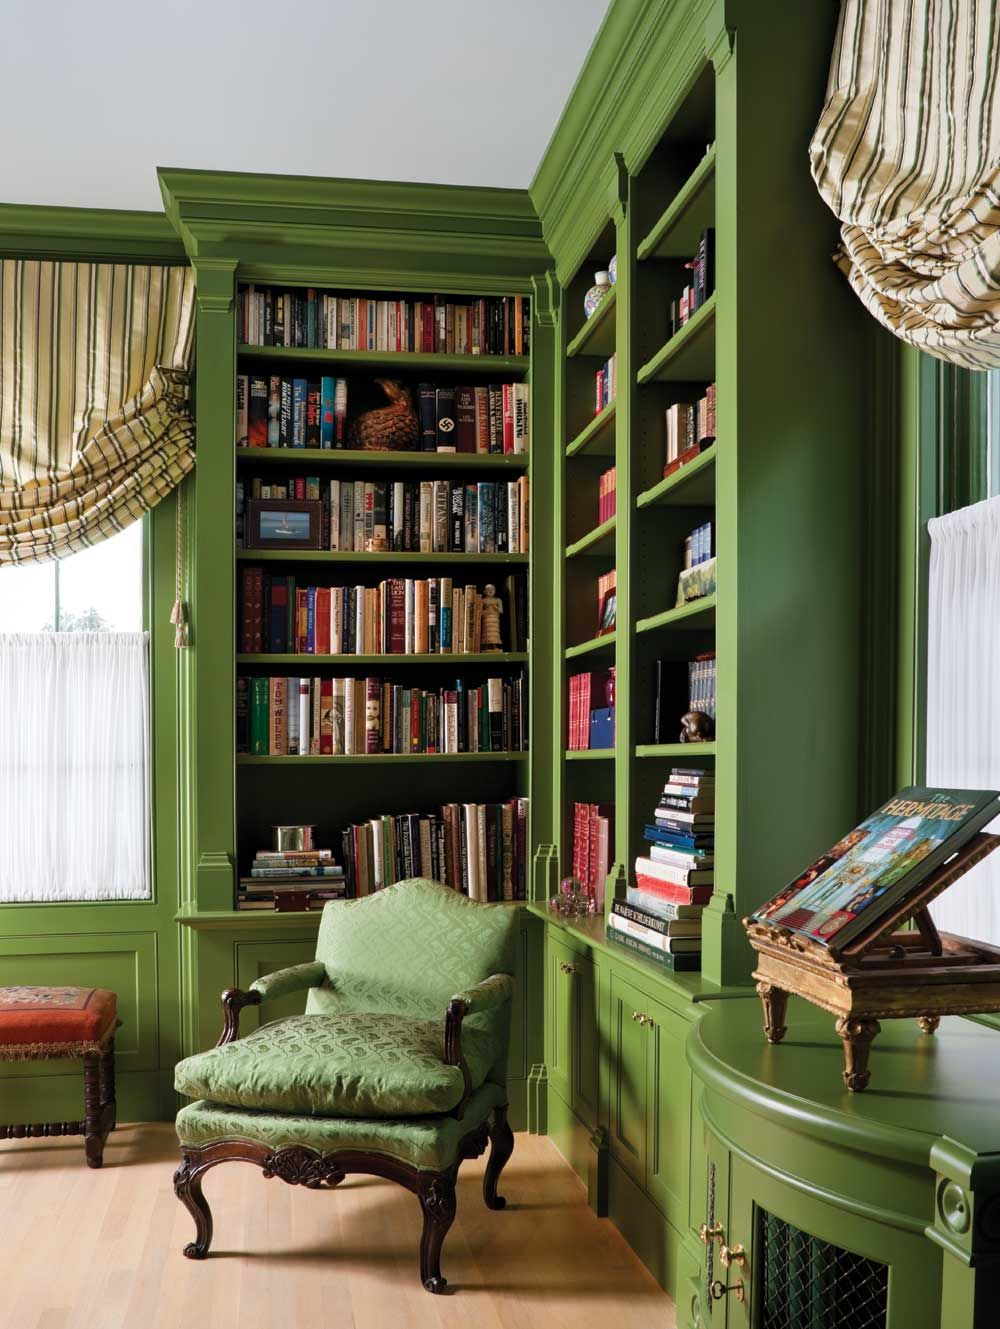 Living Room Library Design Ideas: 25 Creative Book Storage Ideas And Home Library Designs